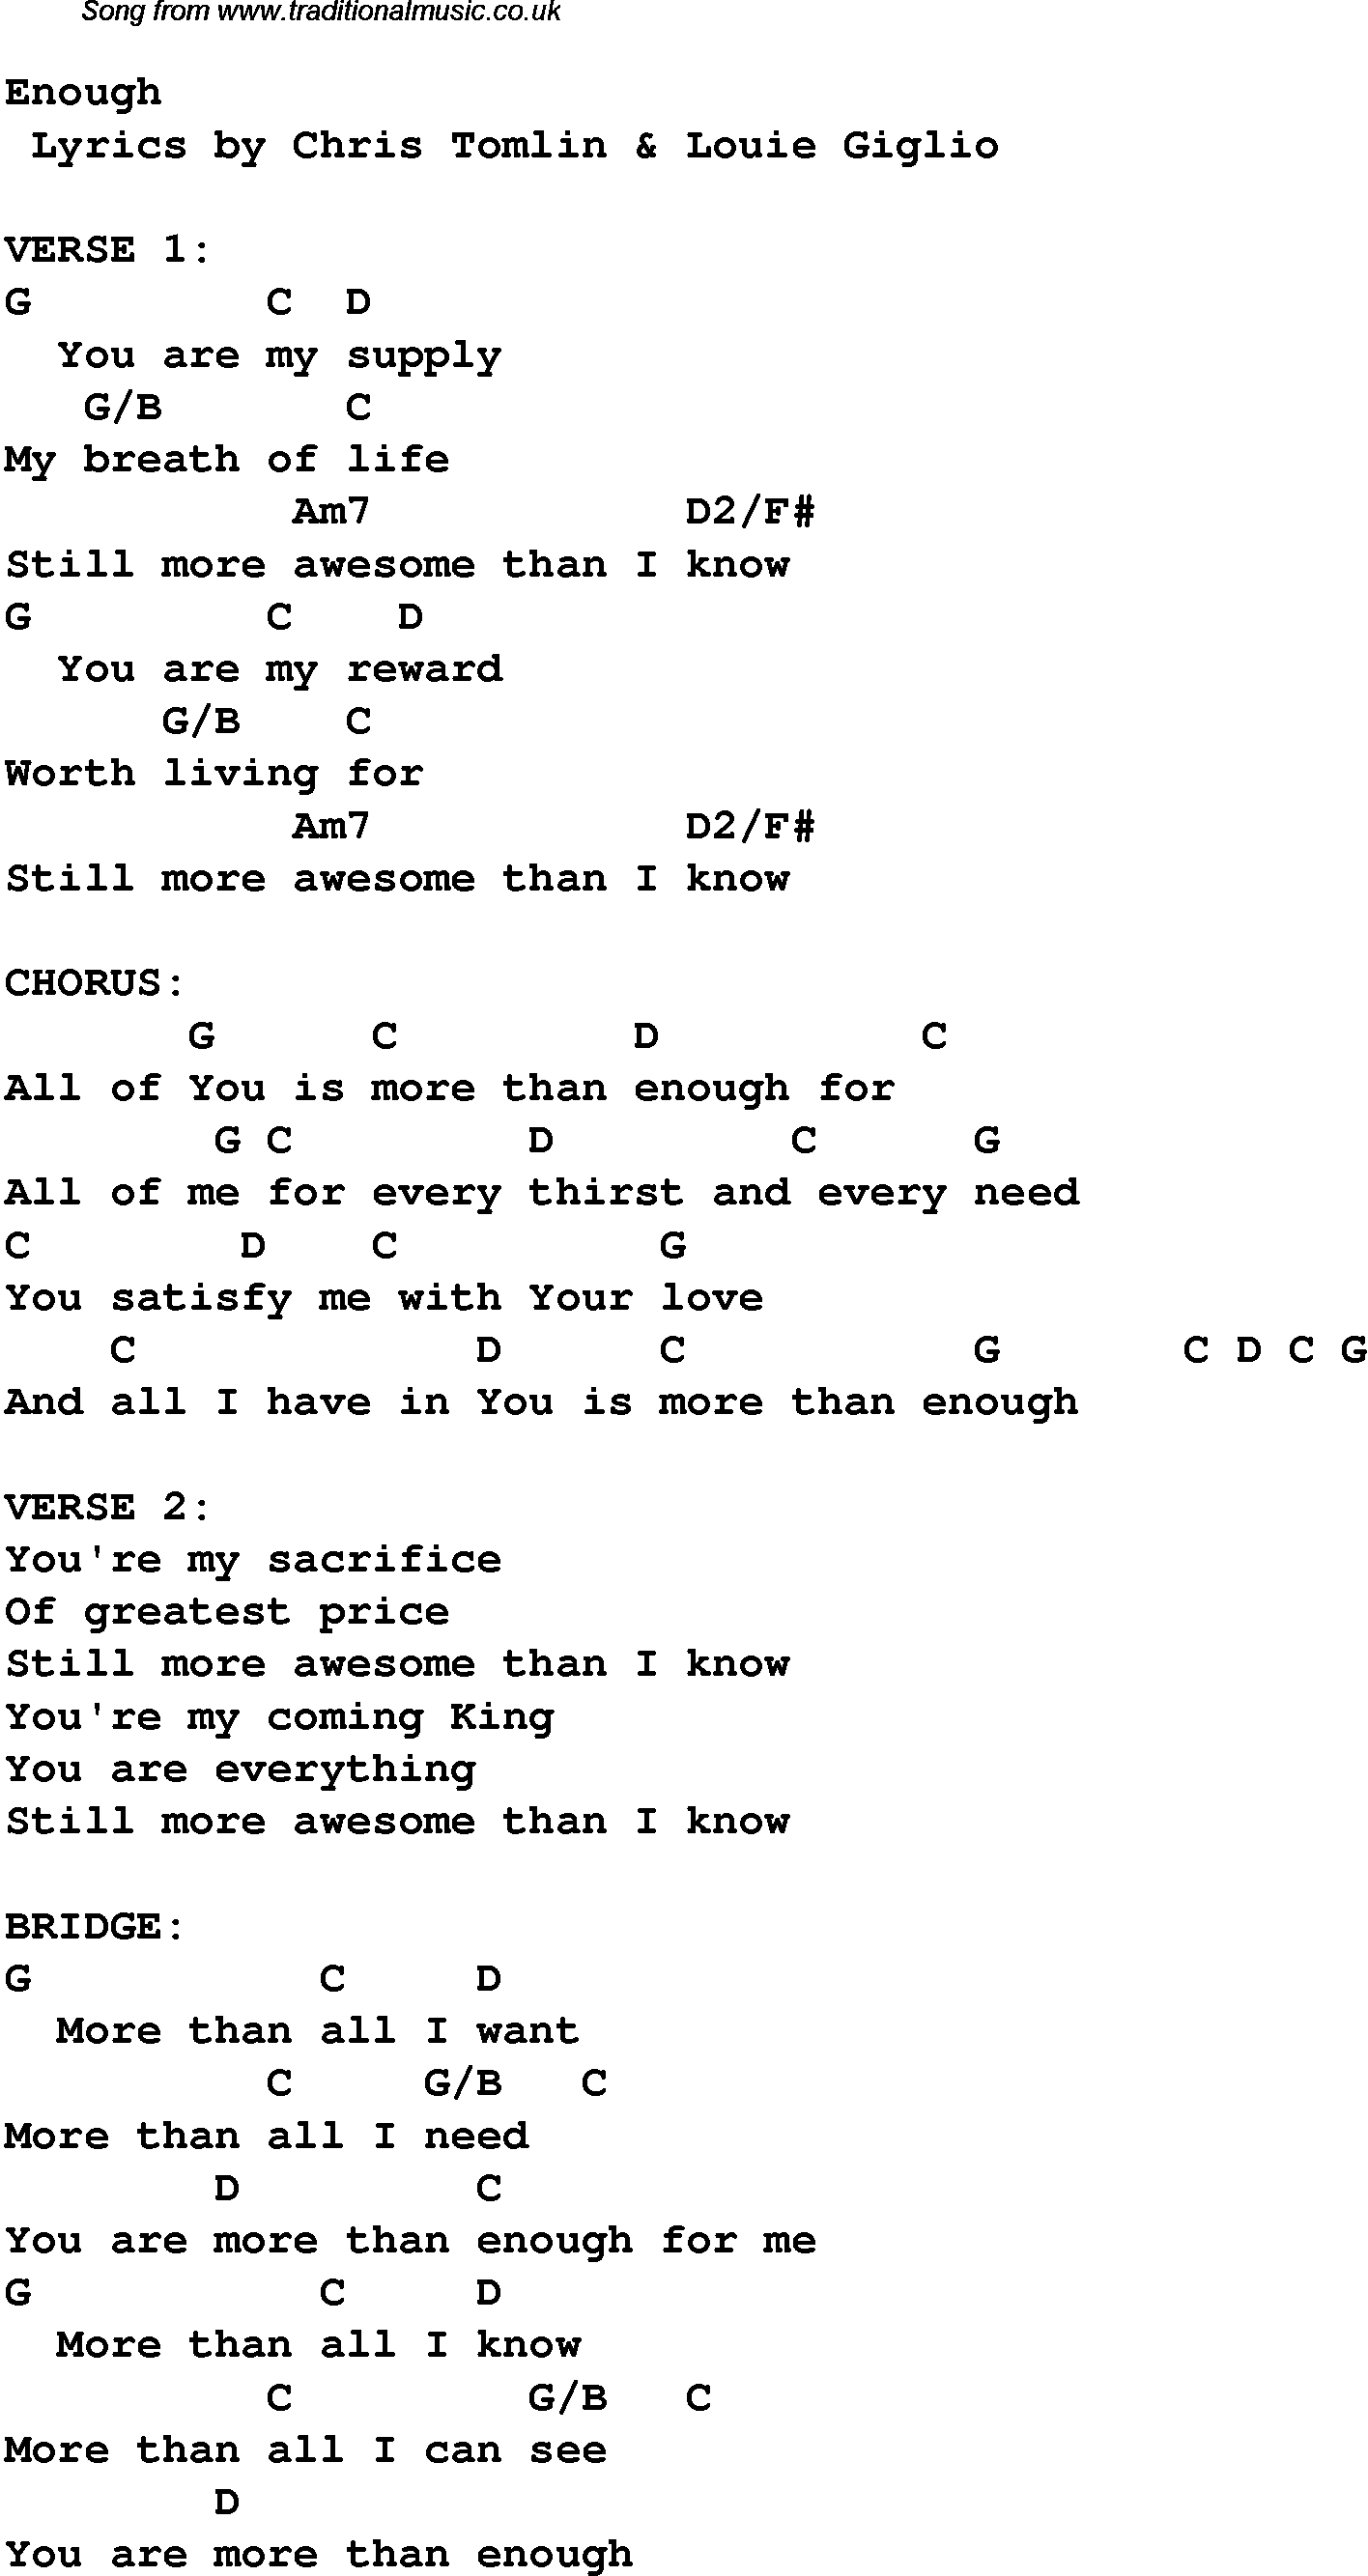 Home By Chris Tomlin Chords Chris Tomlin Search Page 1